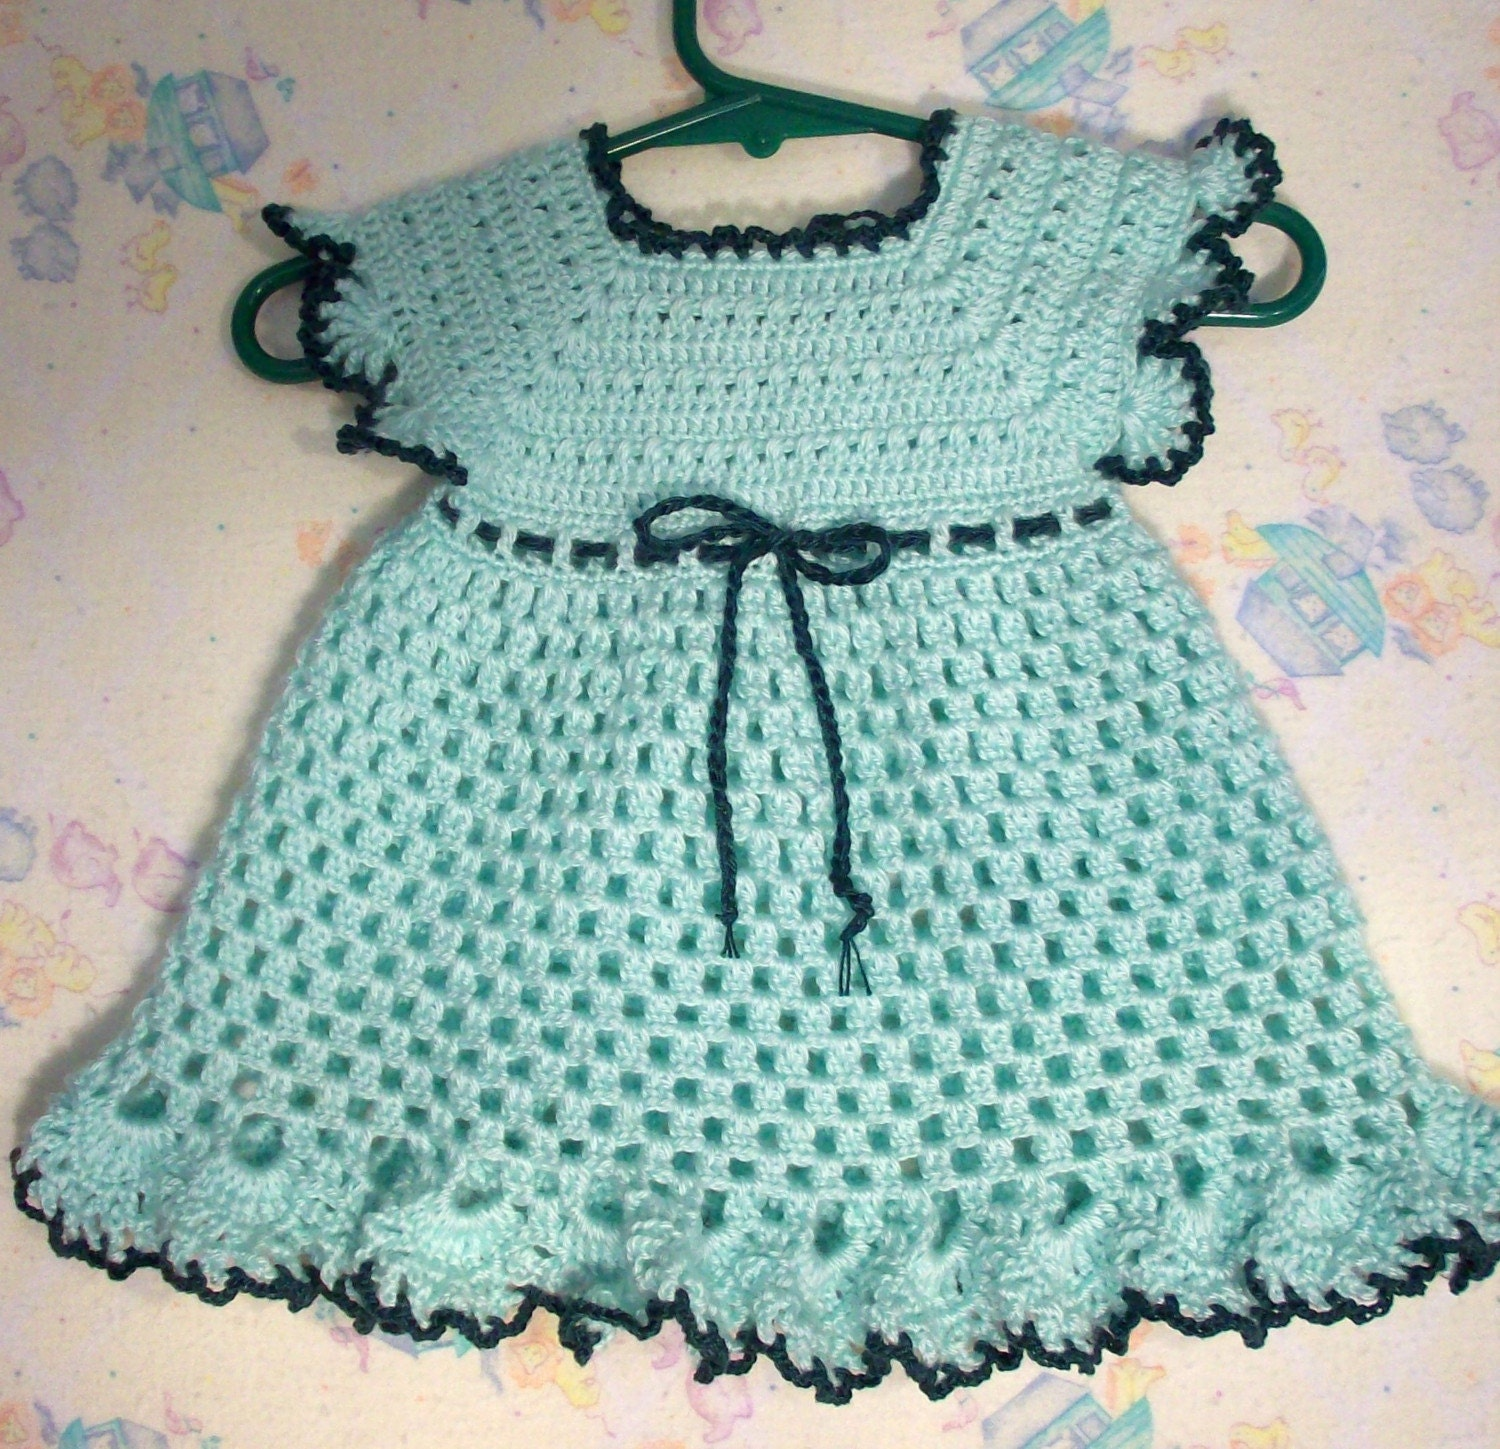 How To Crochet Baby Dress Pattern : Crochet Baby Clothes Patterns Blog images